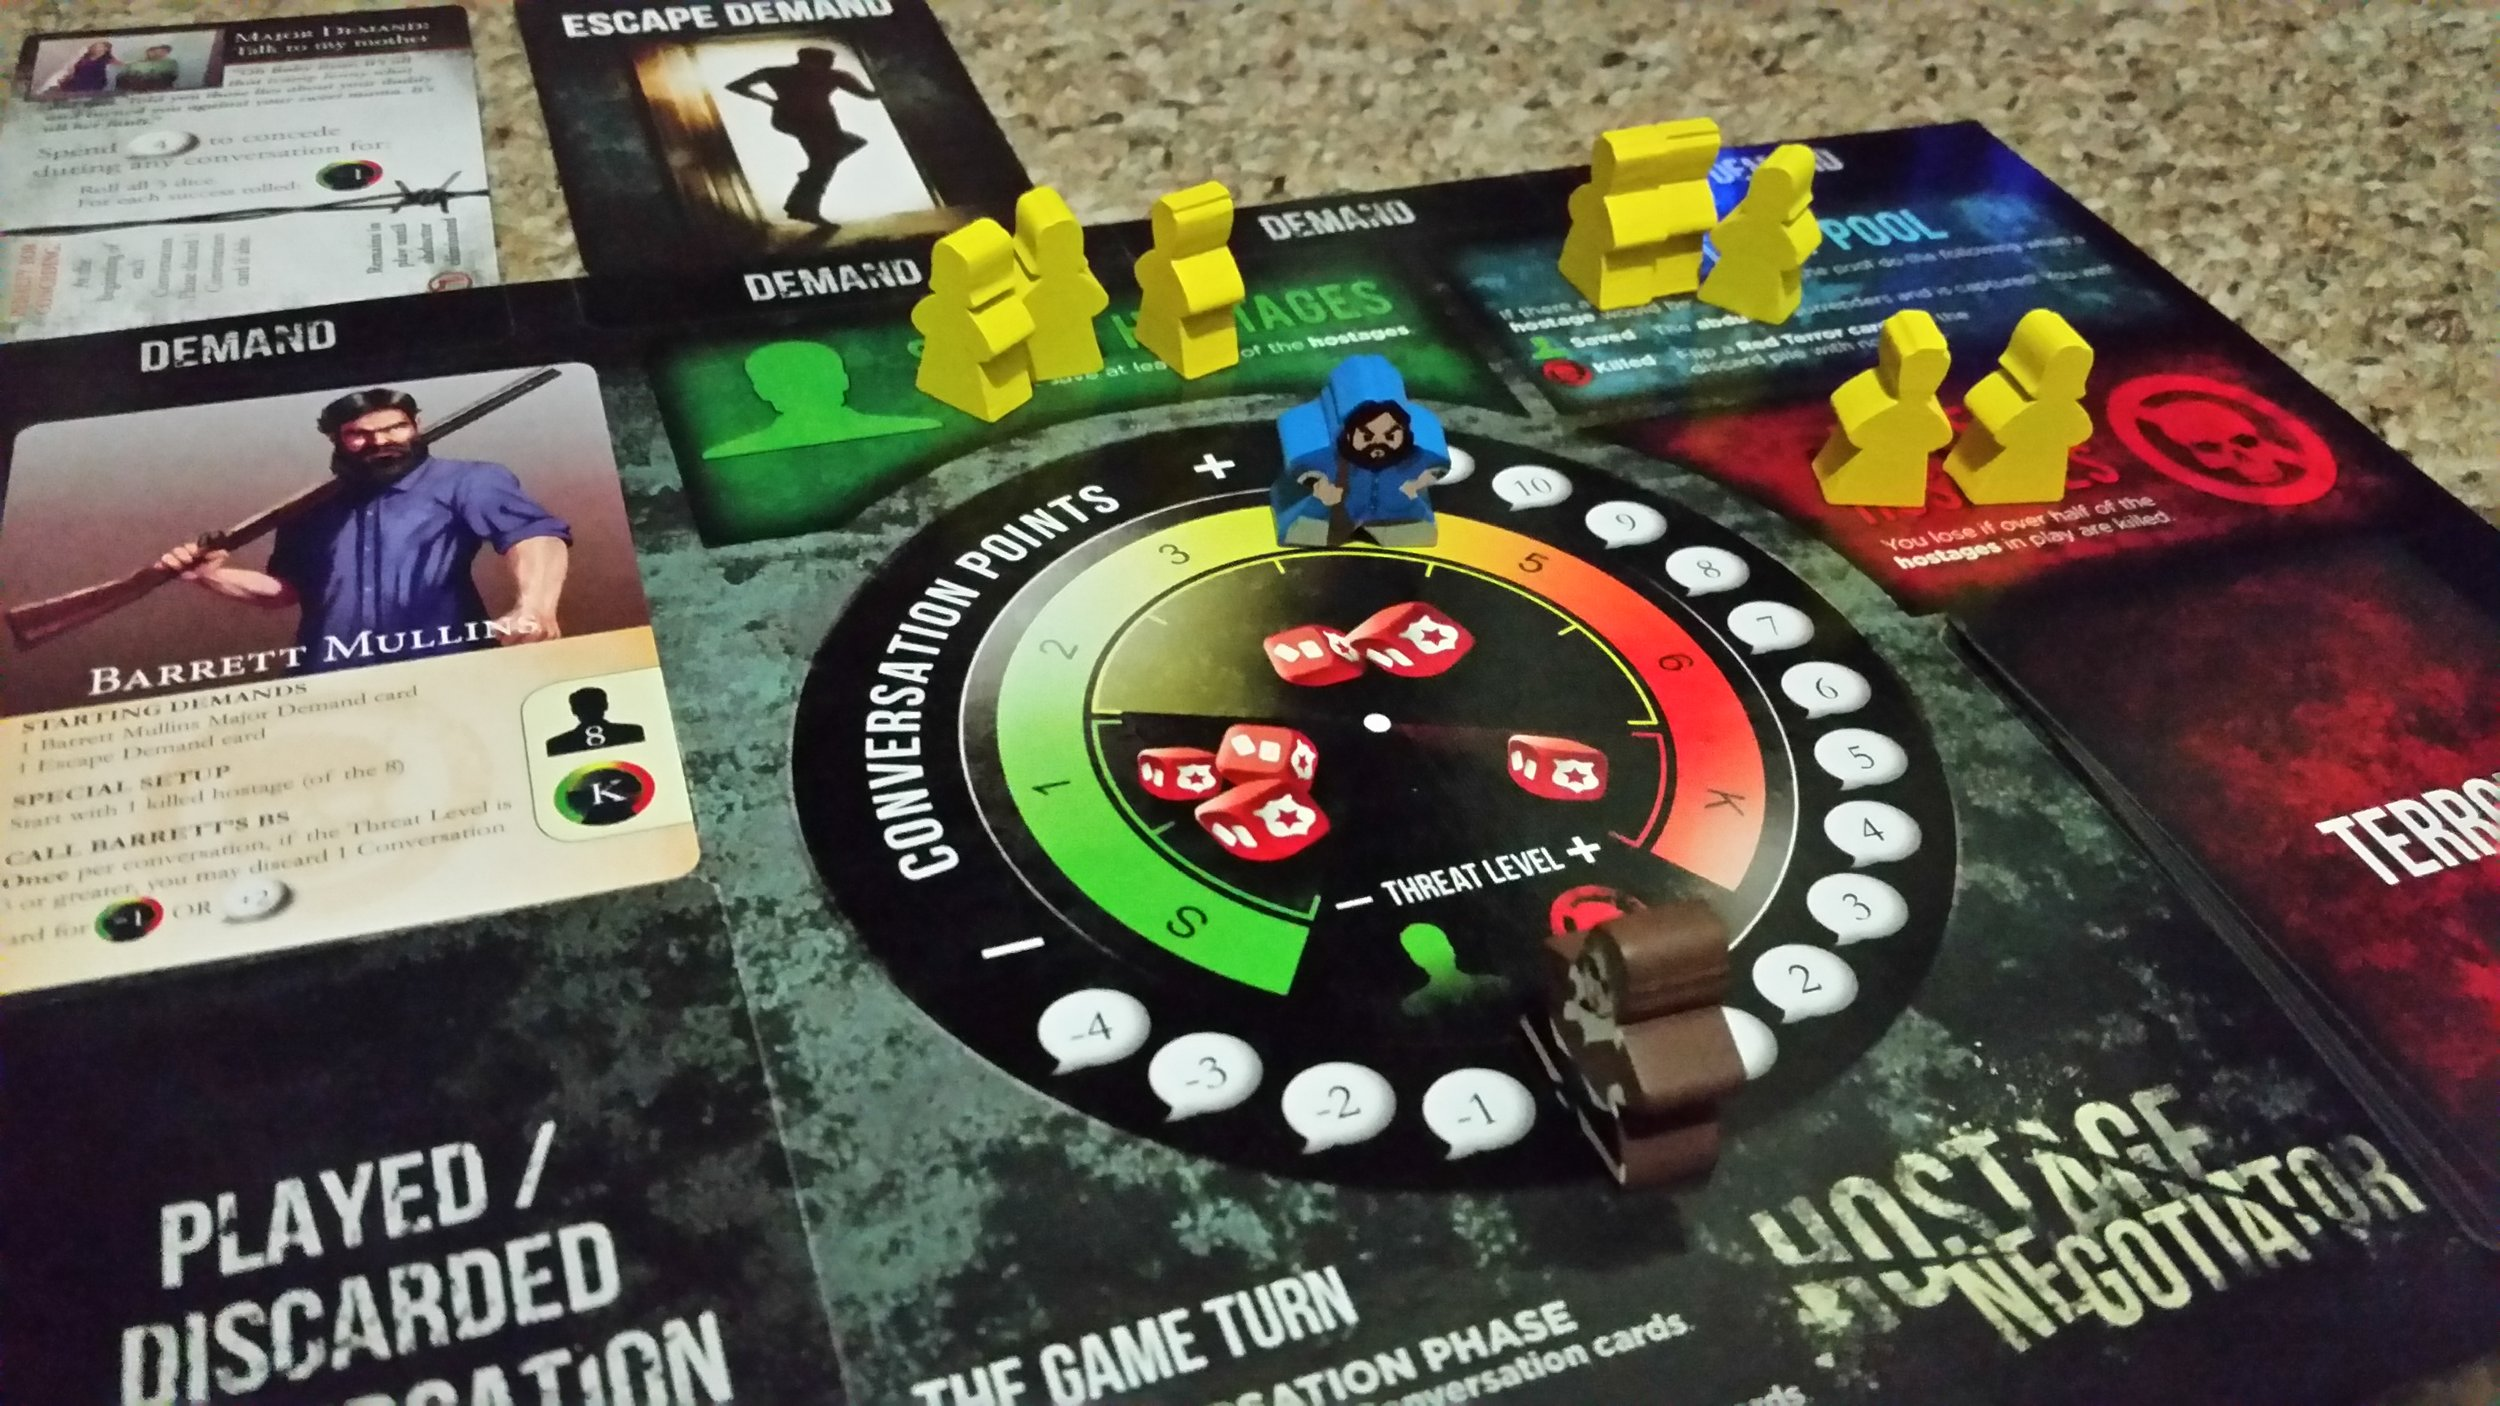 These custom meeples for the abductors and negotiators are not included with any version of the game, they were a special KS-related project from  Meeple Source . I'm not sure the availability of these outside HN KS projects. But they look awesome!